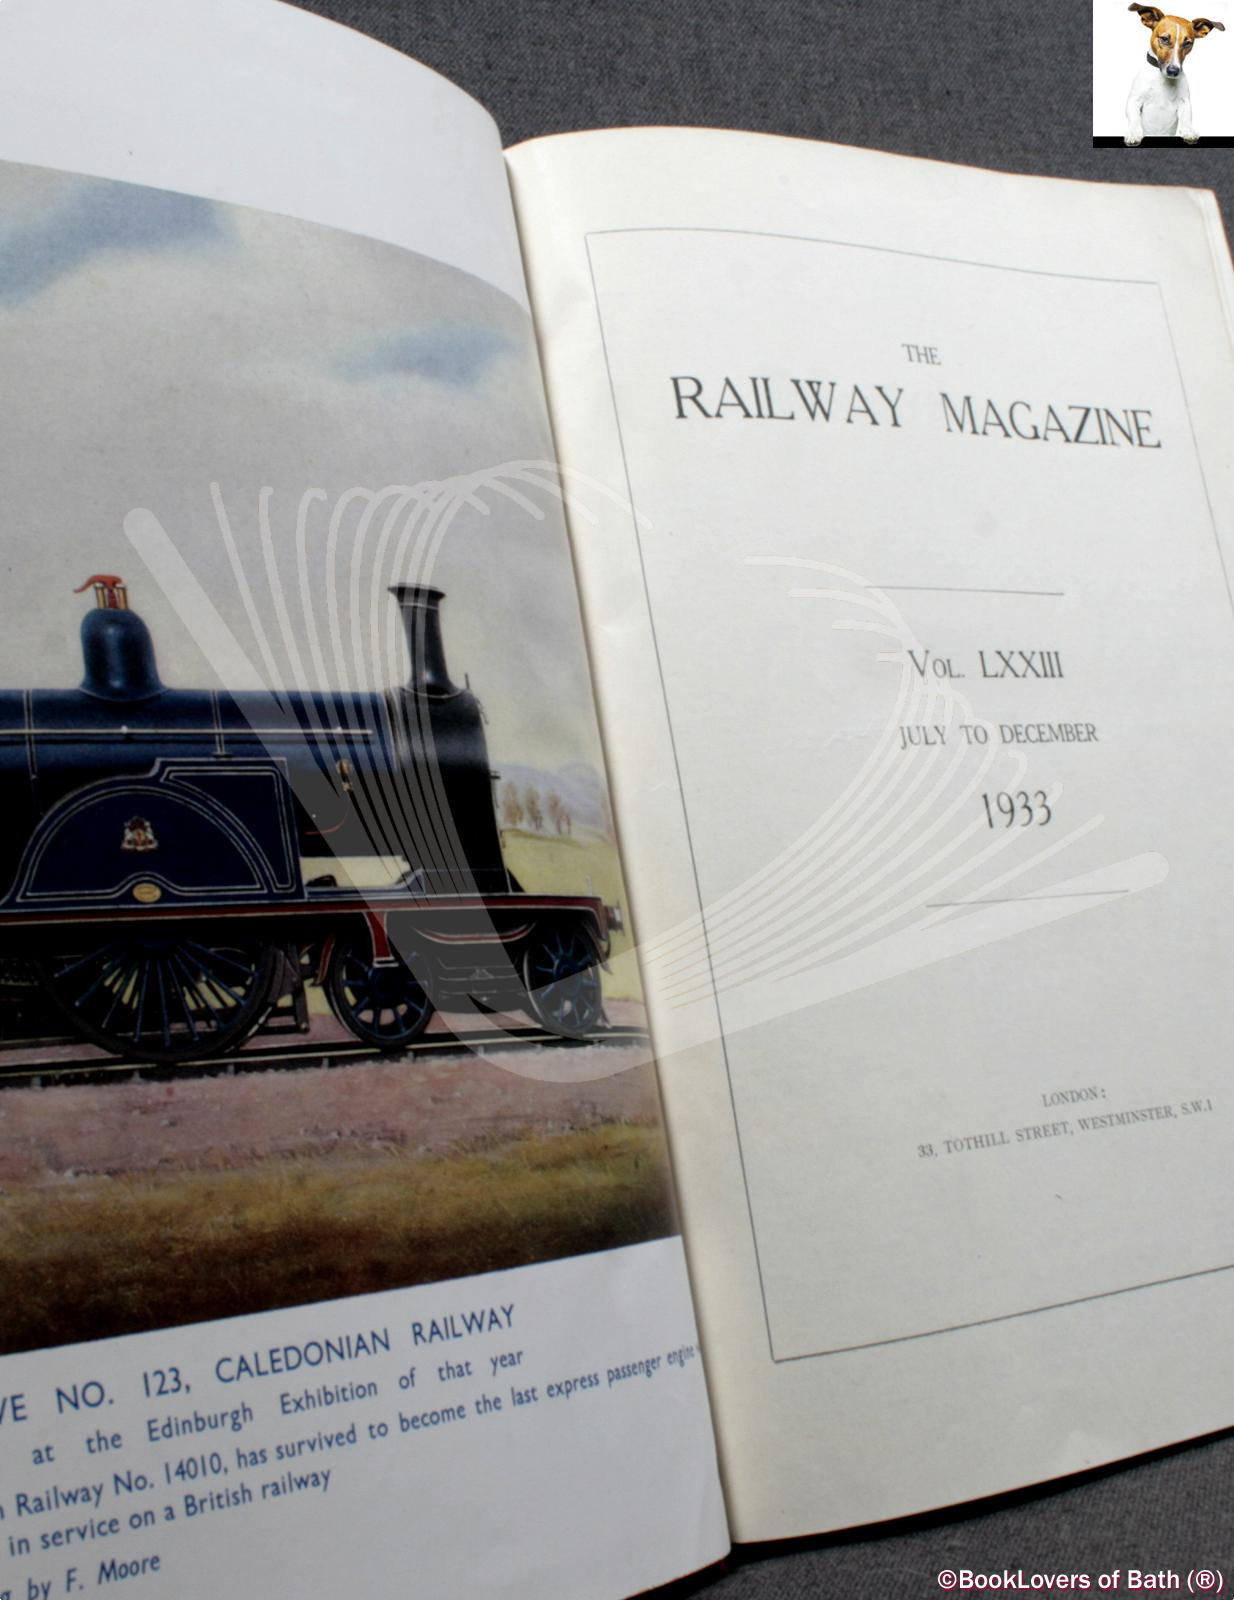 The Railway Magazine Voluime LXXIII July to December 1933 Anon